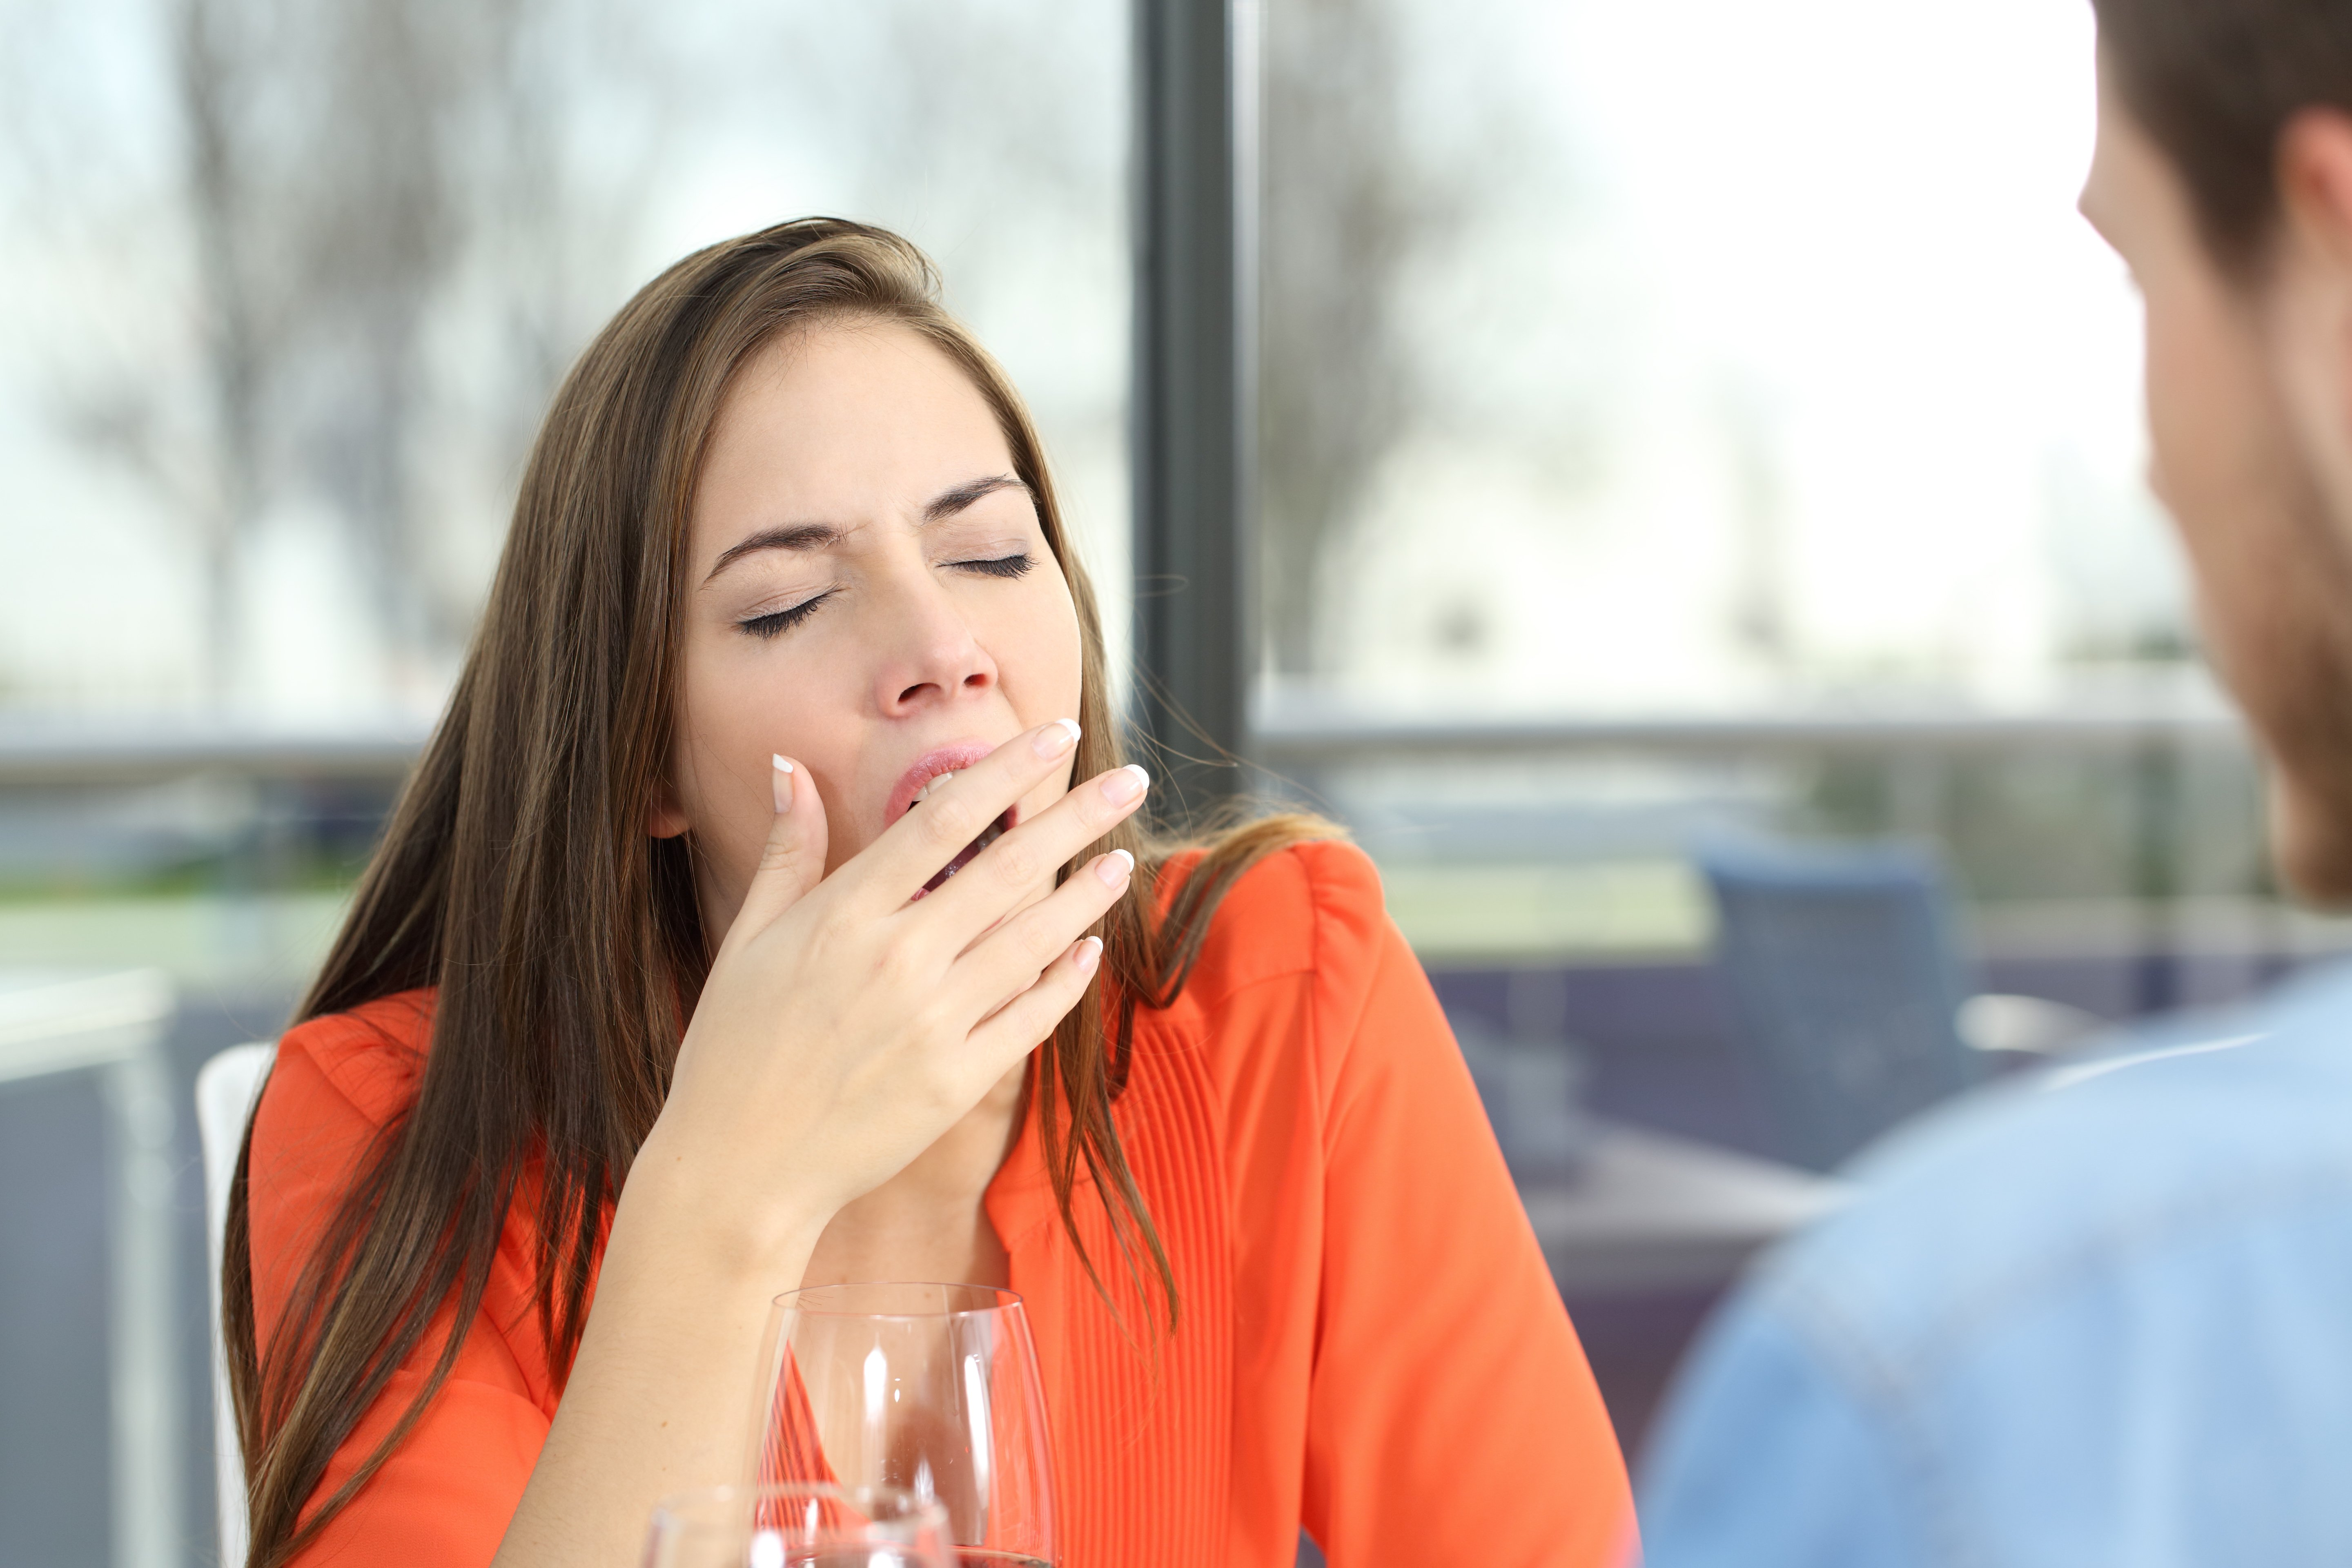 Photo of woman yawning while sitting at a table with a man. | Source: Shutterstock